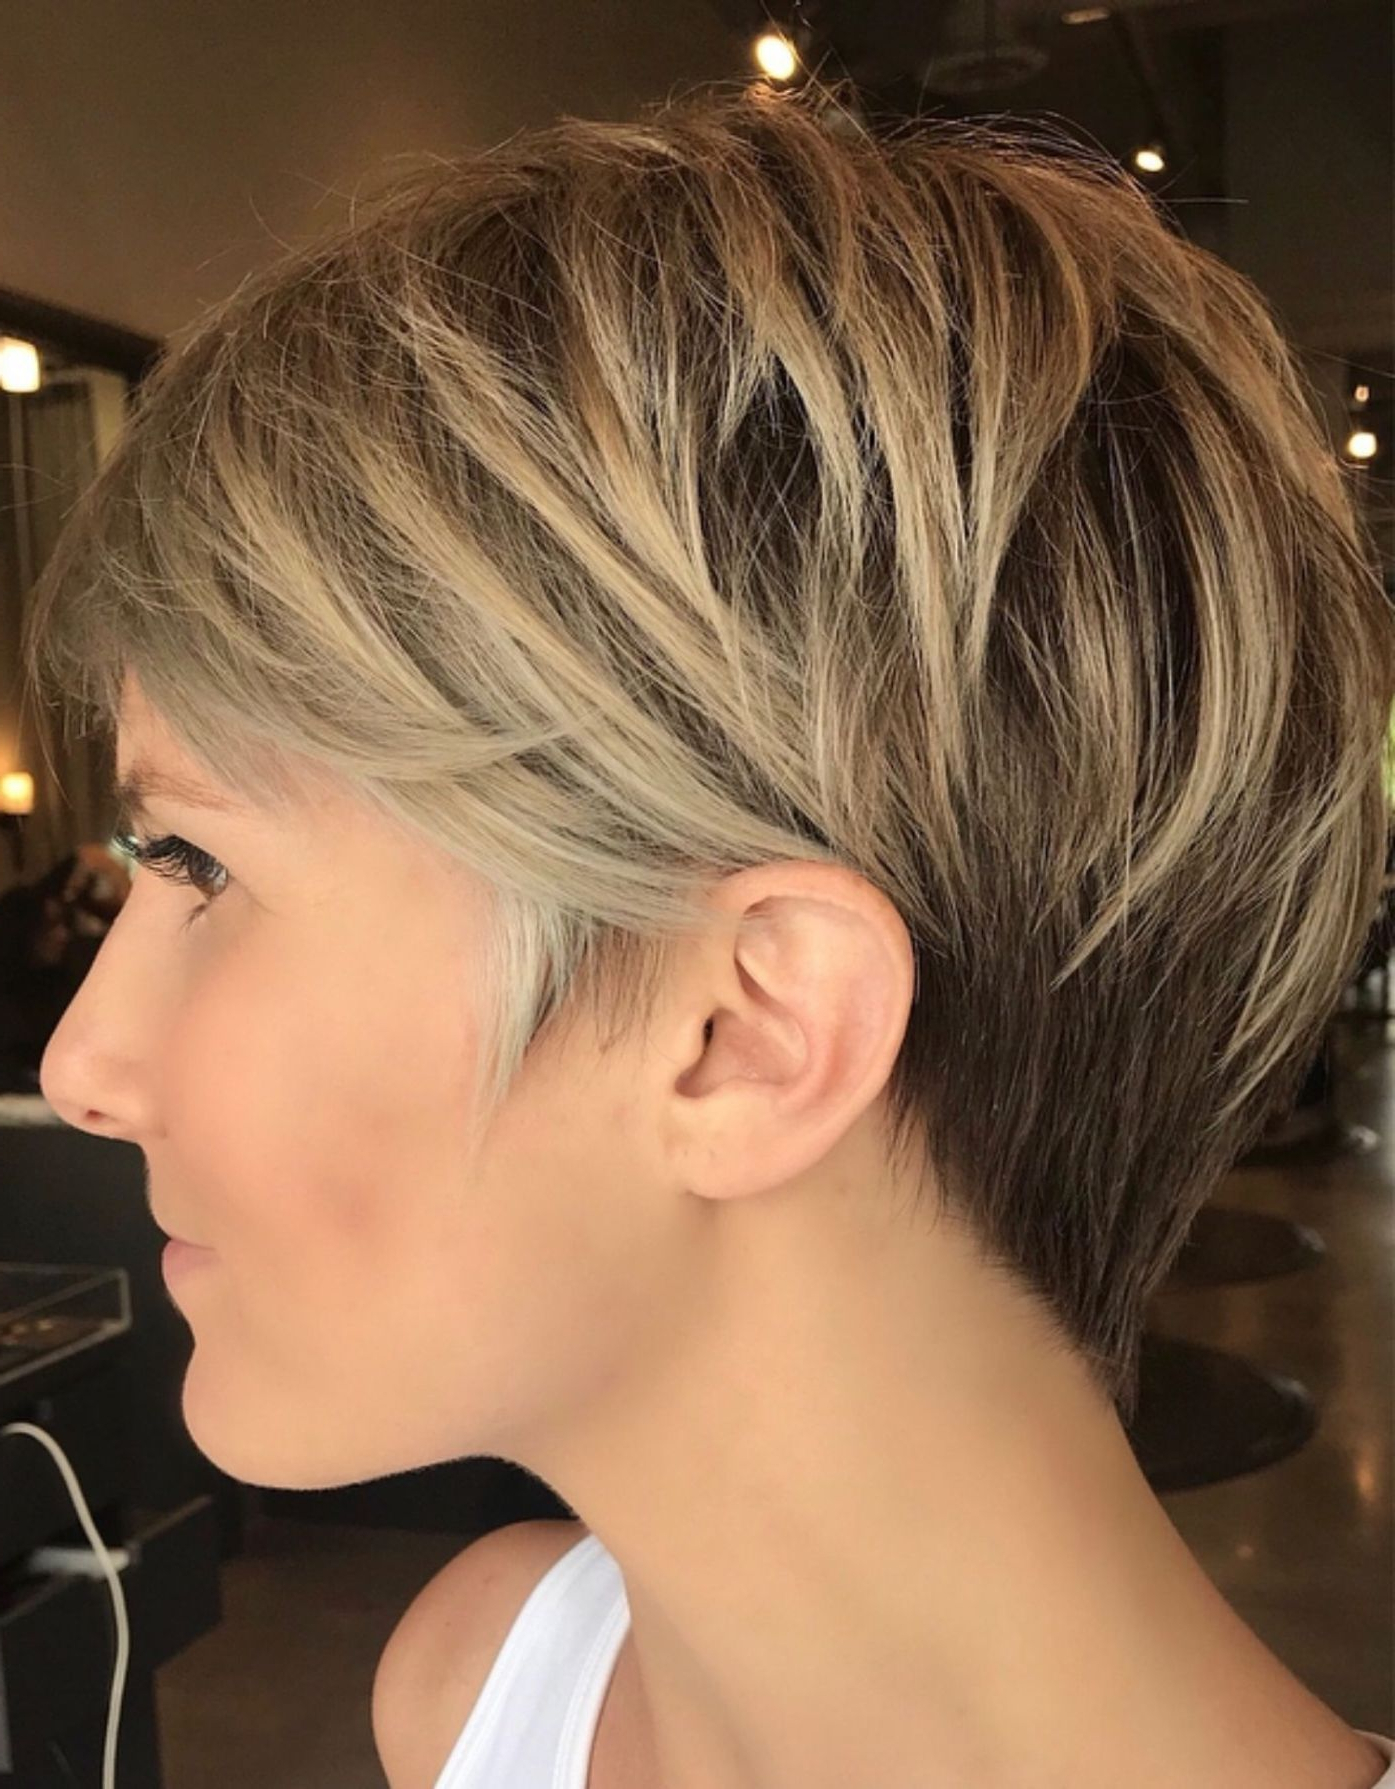 100 Mind Blowing Short Hairstyles For Fine Hair | Hairstyles Within Bronde Balayage Pixie Haircuts With V Cut Nape (View 1 of 20)